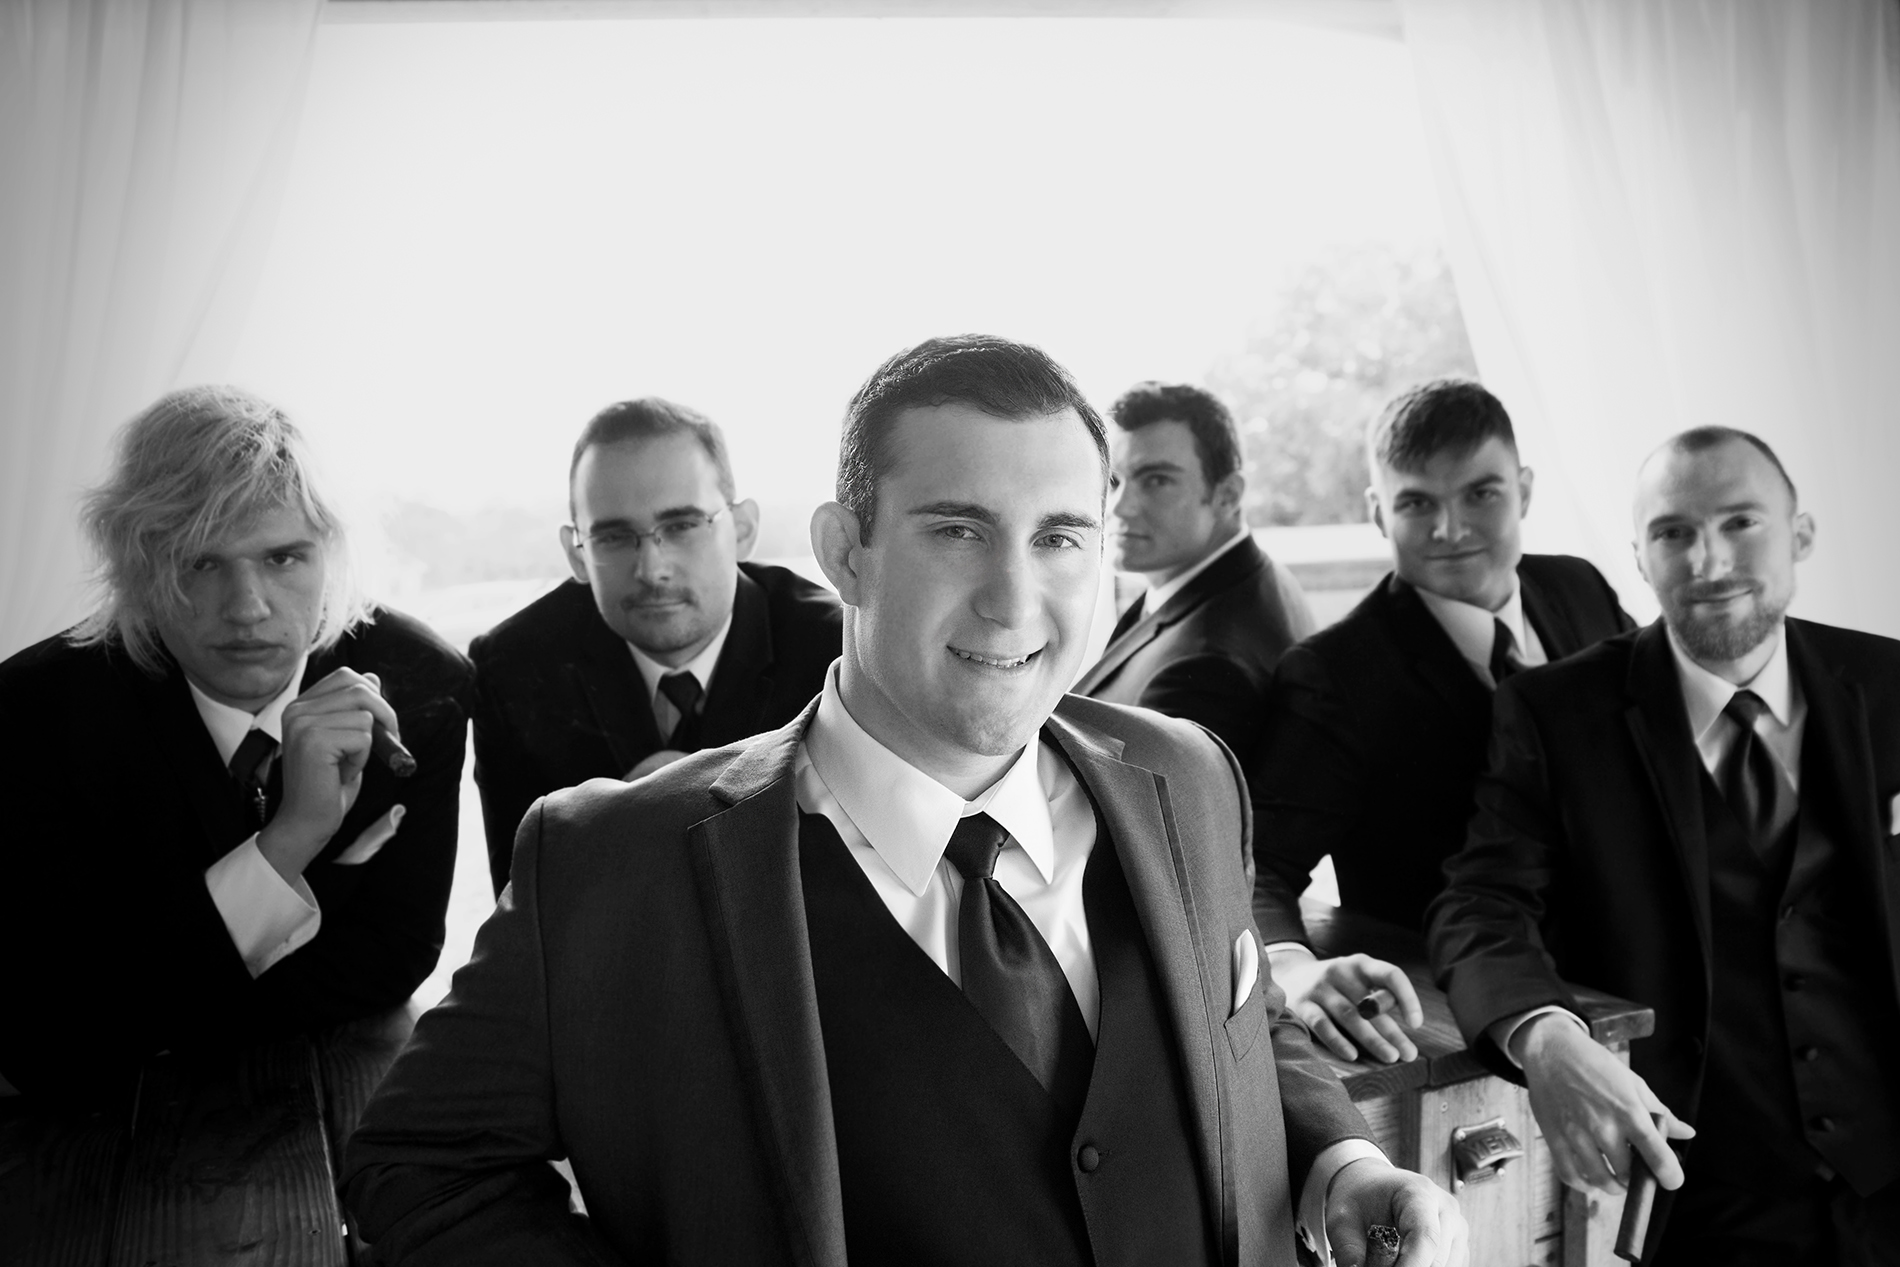 Mt. Pleasant Groom and Groomsmen